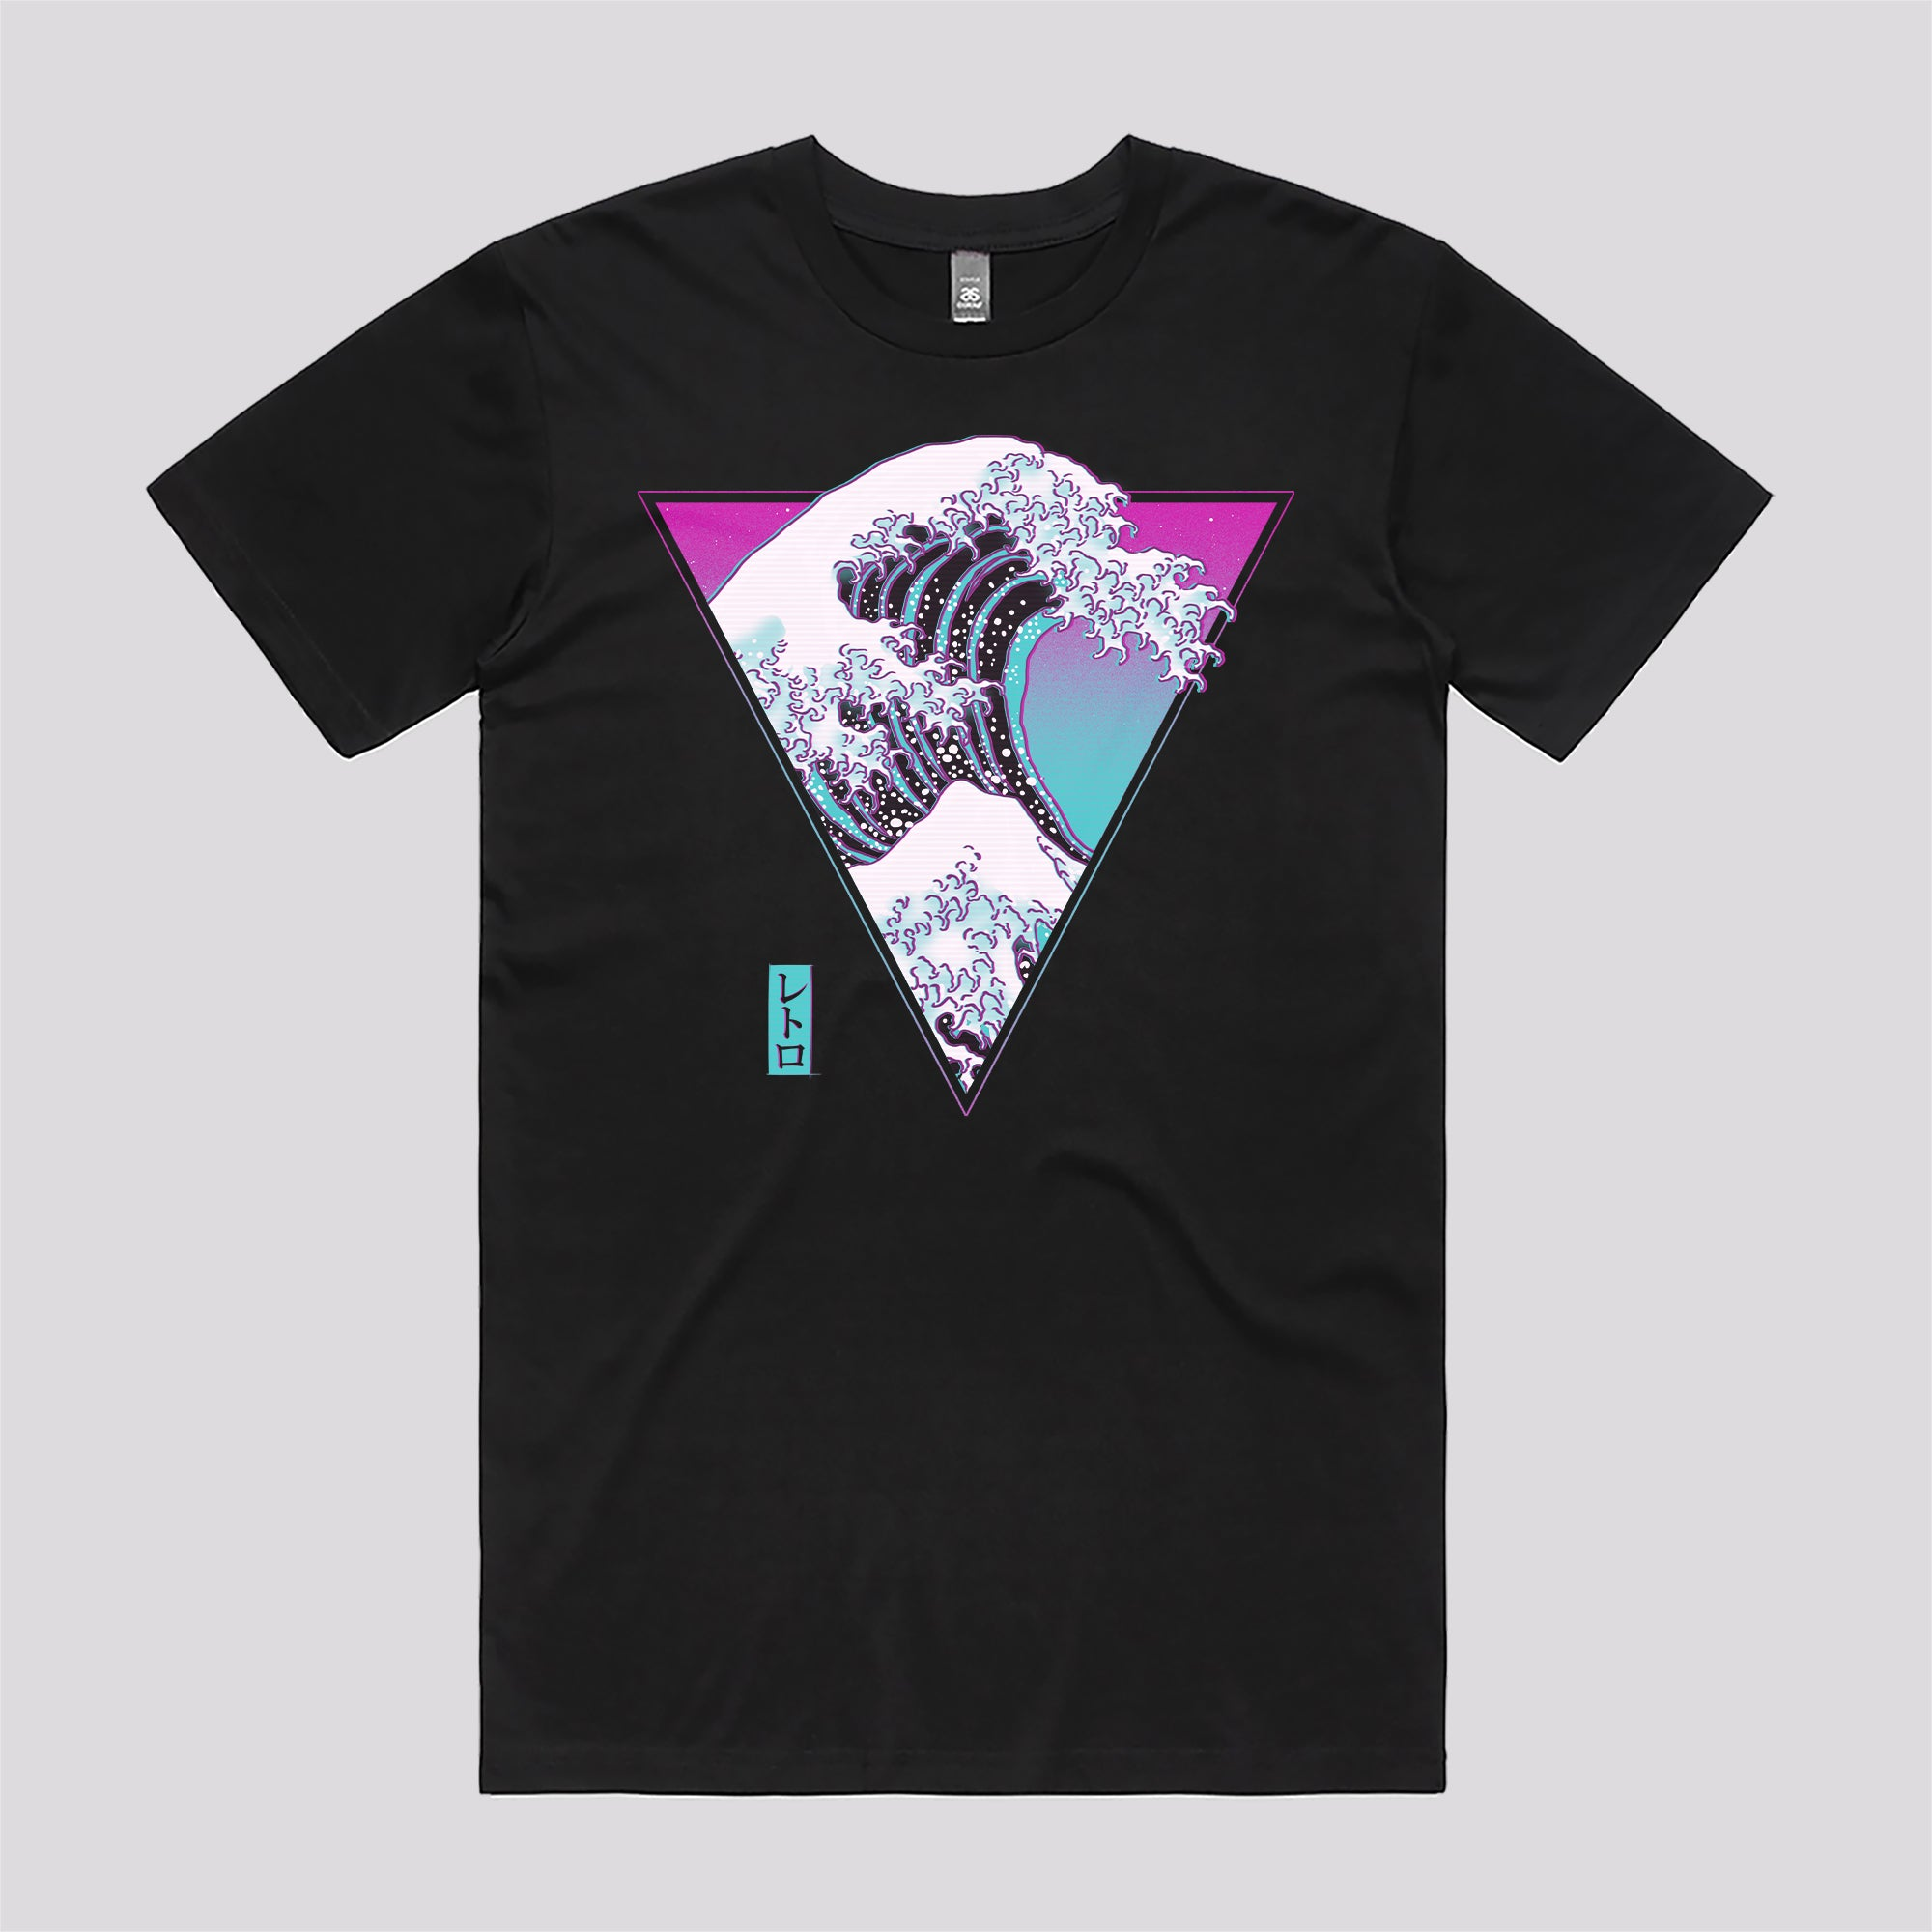 The Great Synthwave T-Shirt